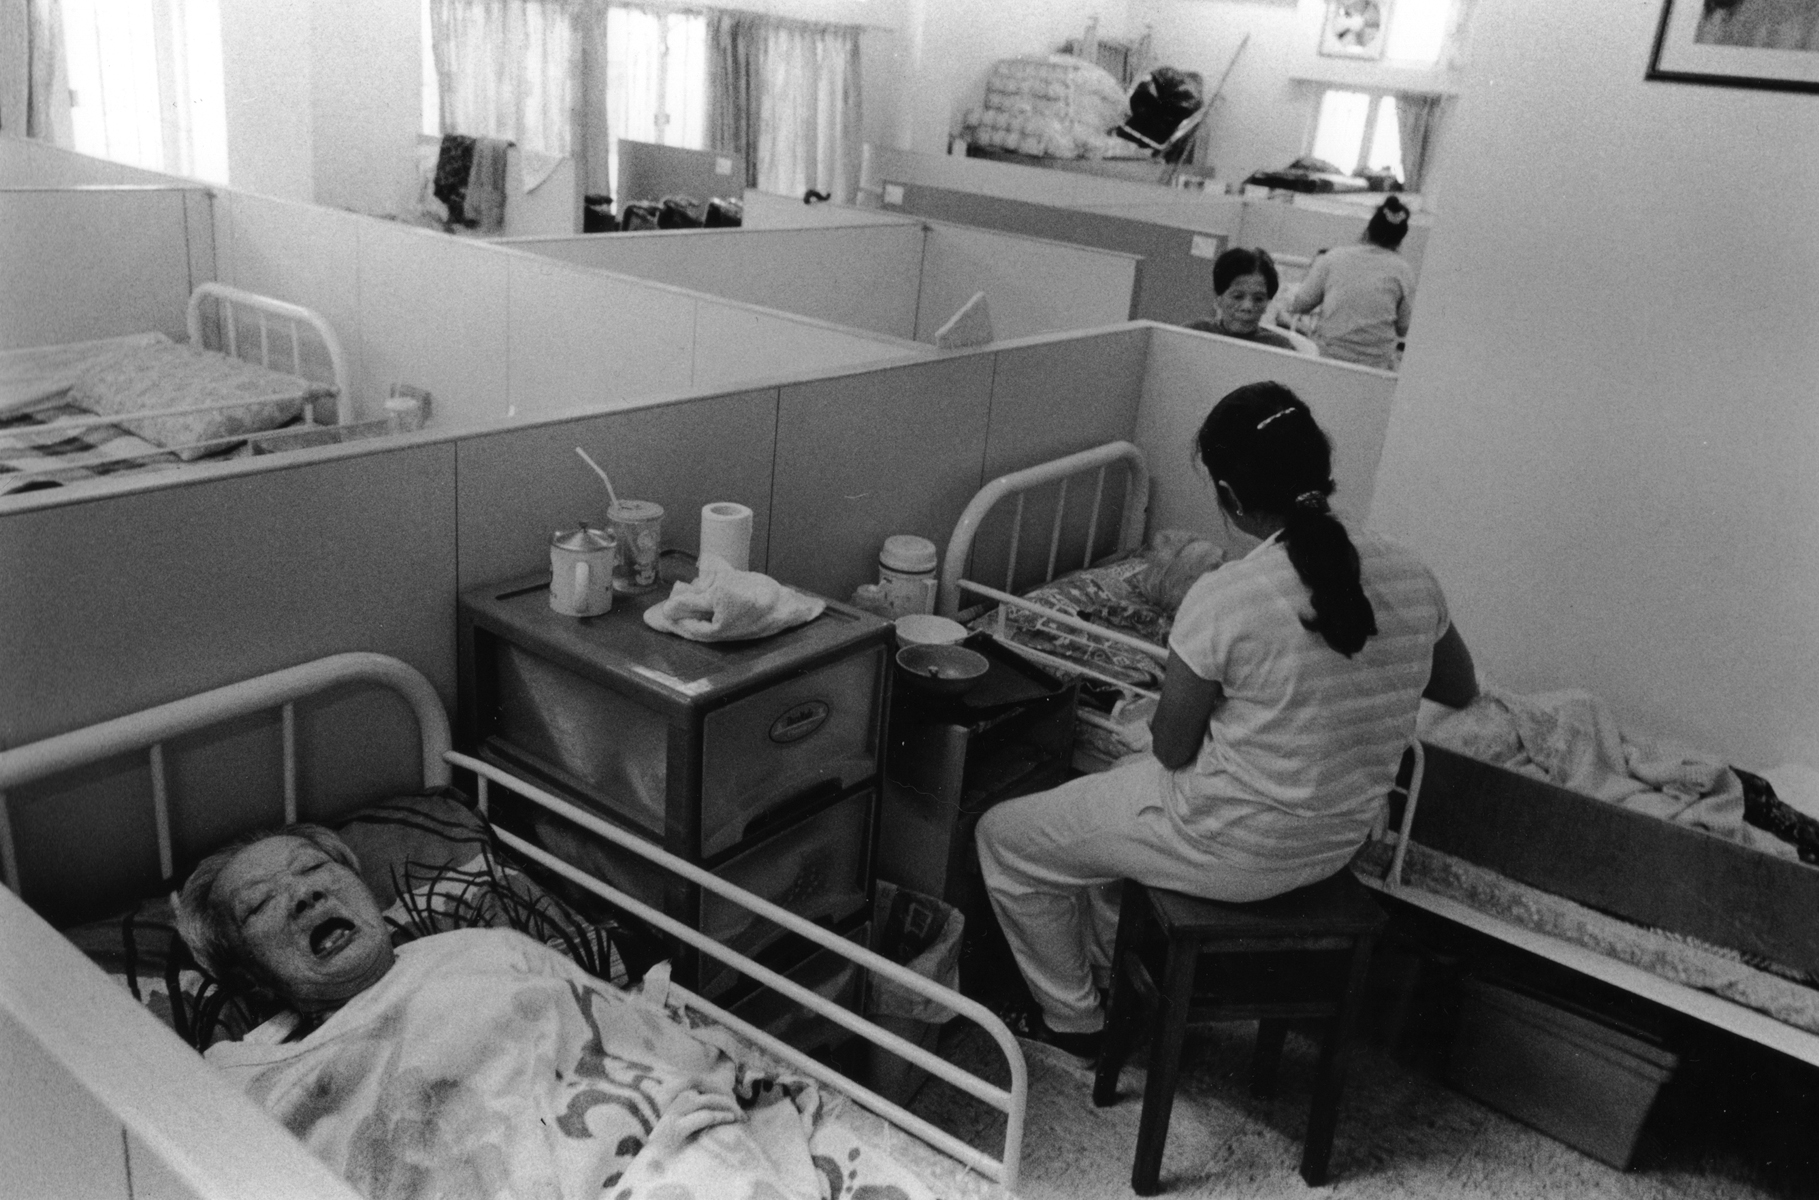 An elderly woman, whose family decided to place their relative in a nursing home, shares a cubicle with another patient, who is being fed by an attendant. Traditionally, the elderly will live with their children and grandchildren. However, as the younger generation have greater access to a college education and corporate jobs, many choose to place their elderly relatives in nursing homes for twenty-four hour care. Aberdeen Harbour, Hong Kong